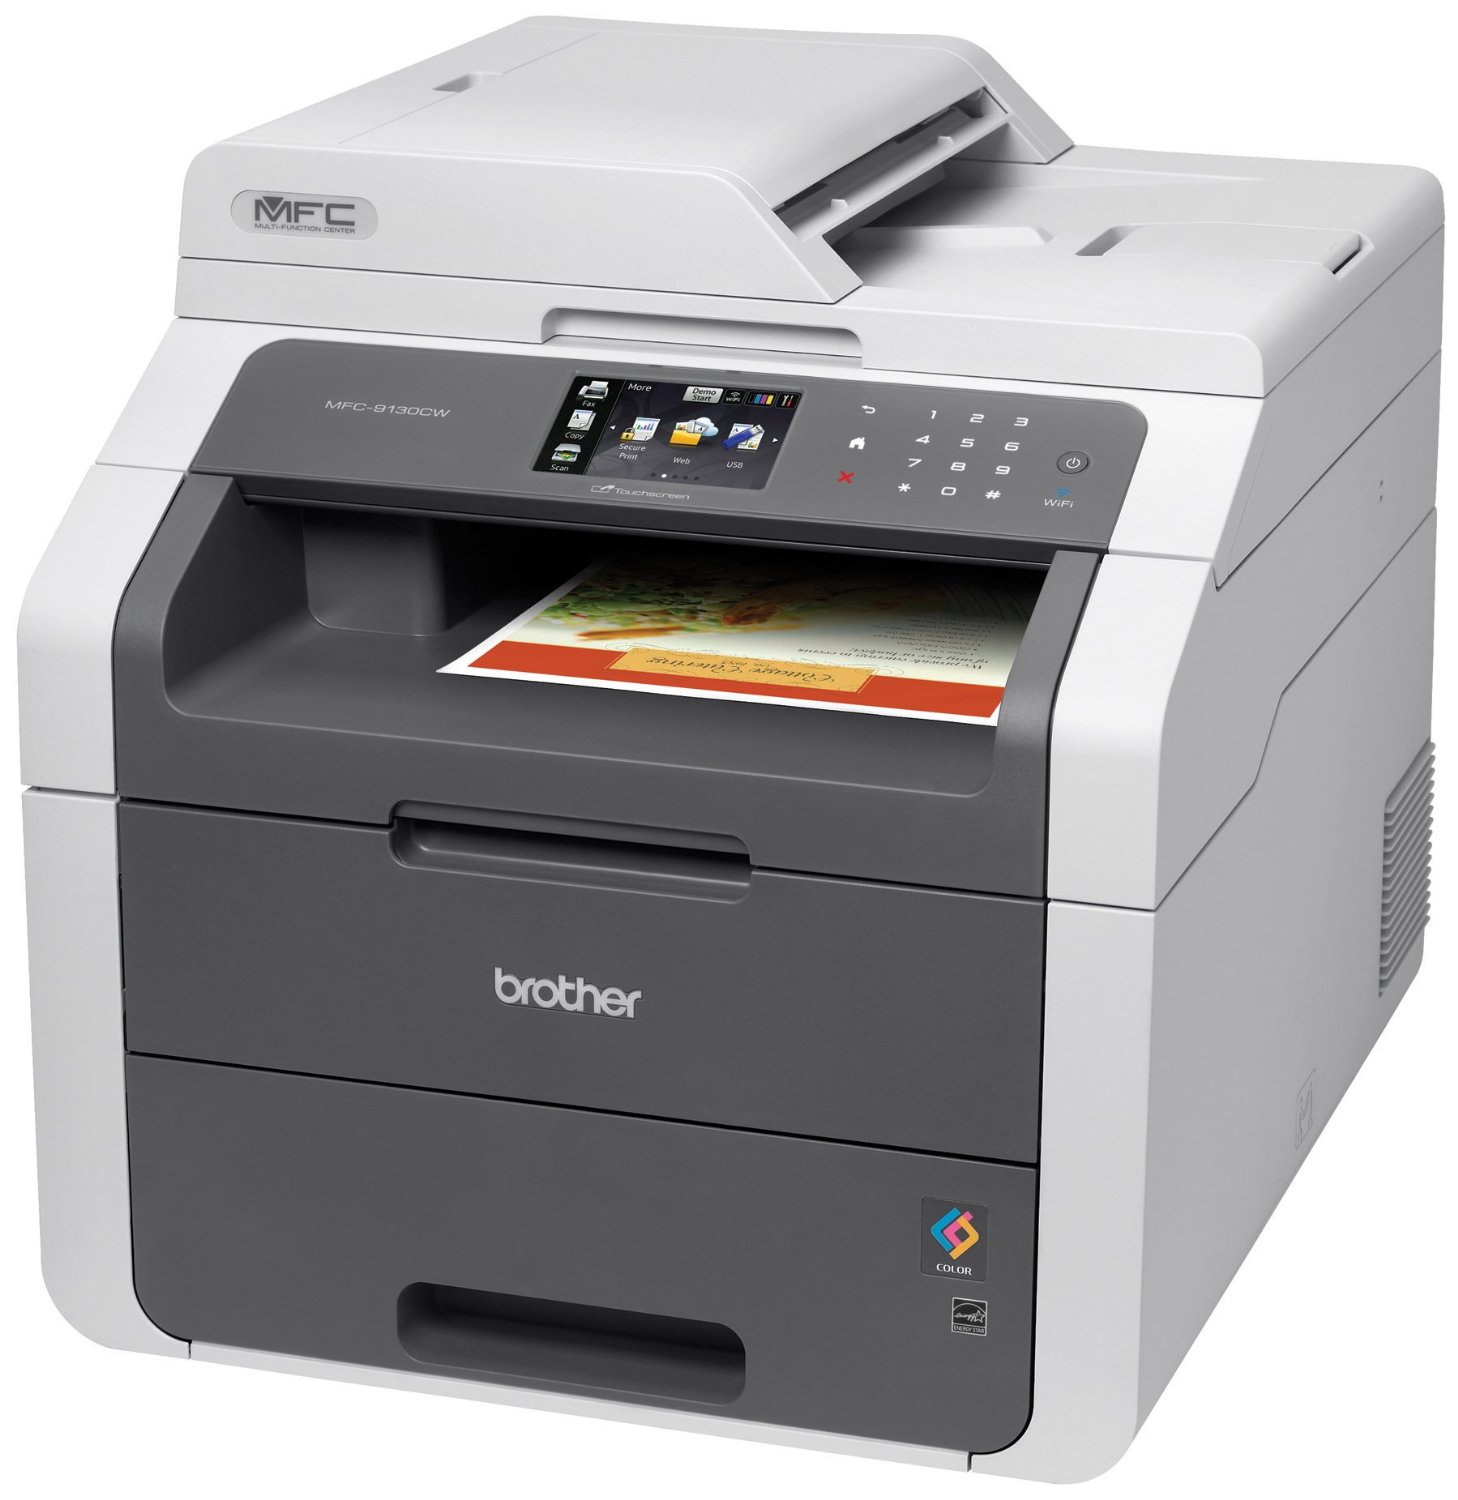 Brother printer mfc9130cw wireless all in one color printer with